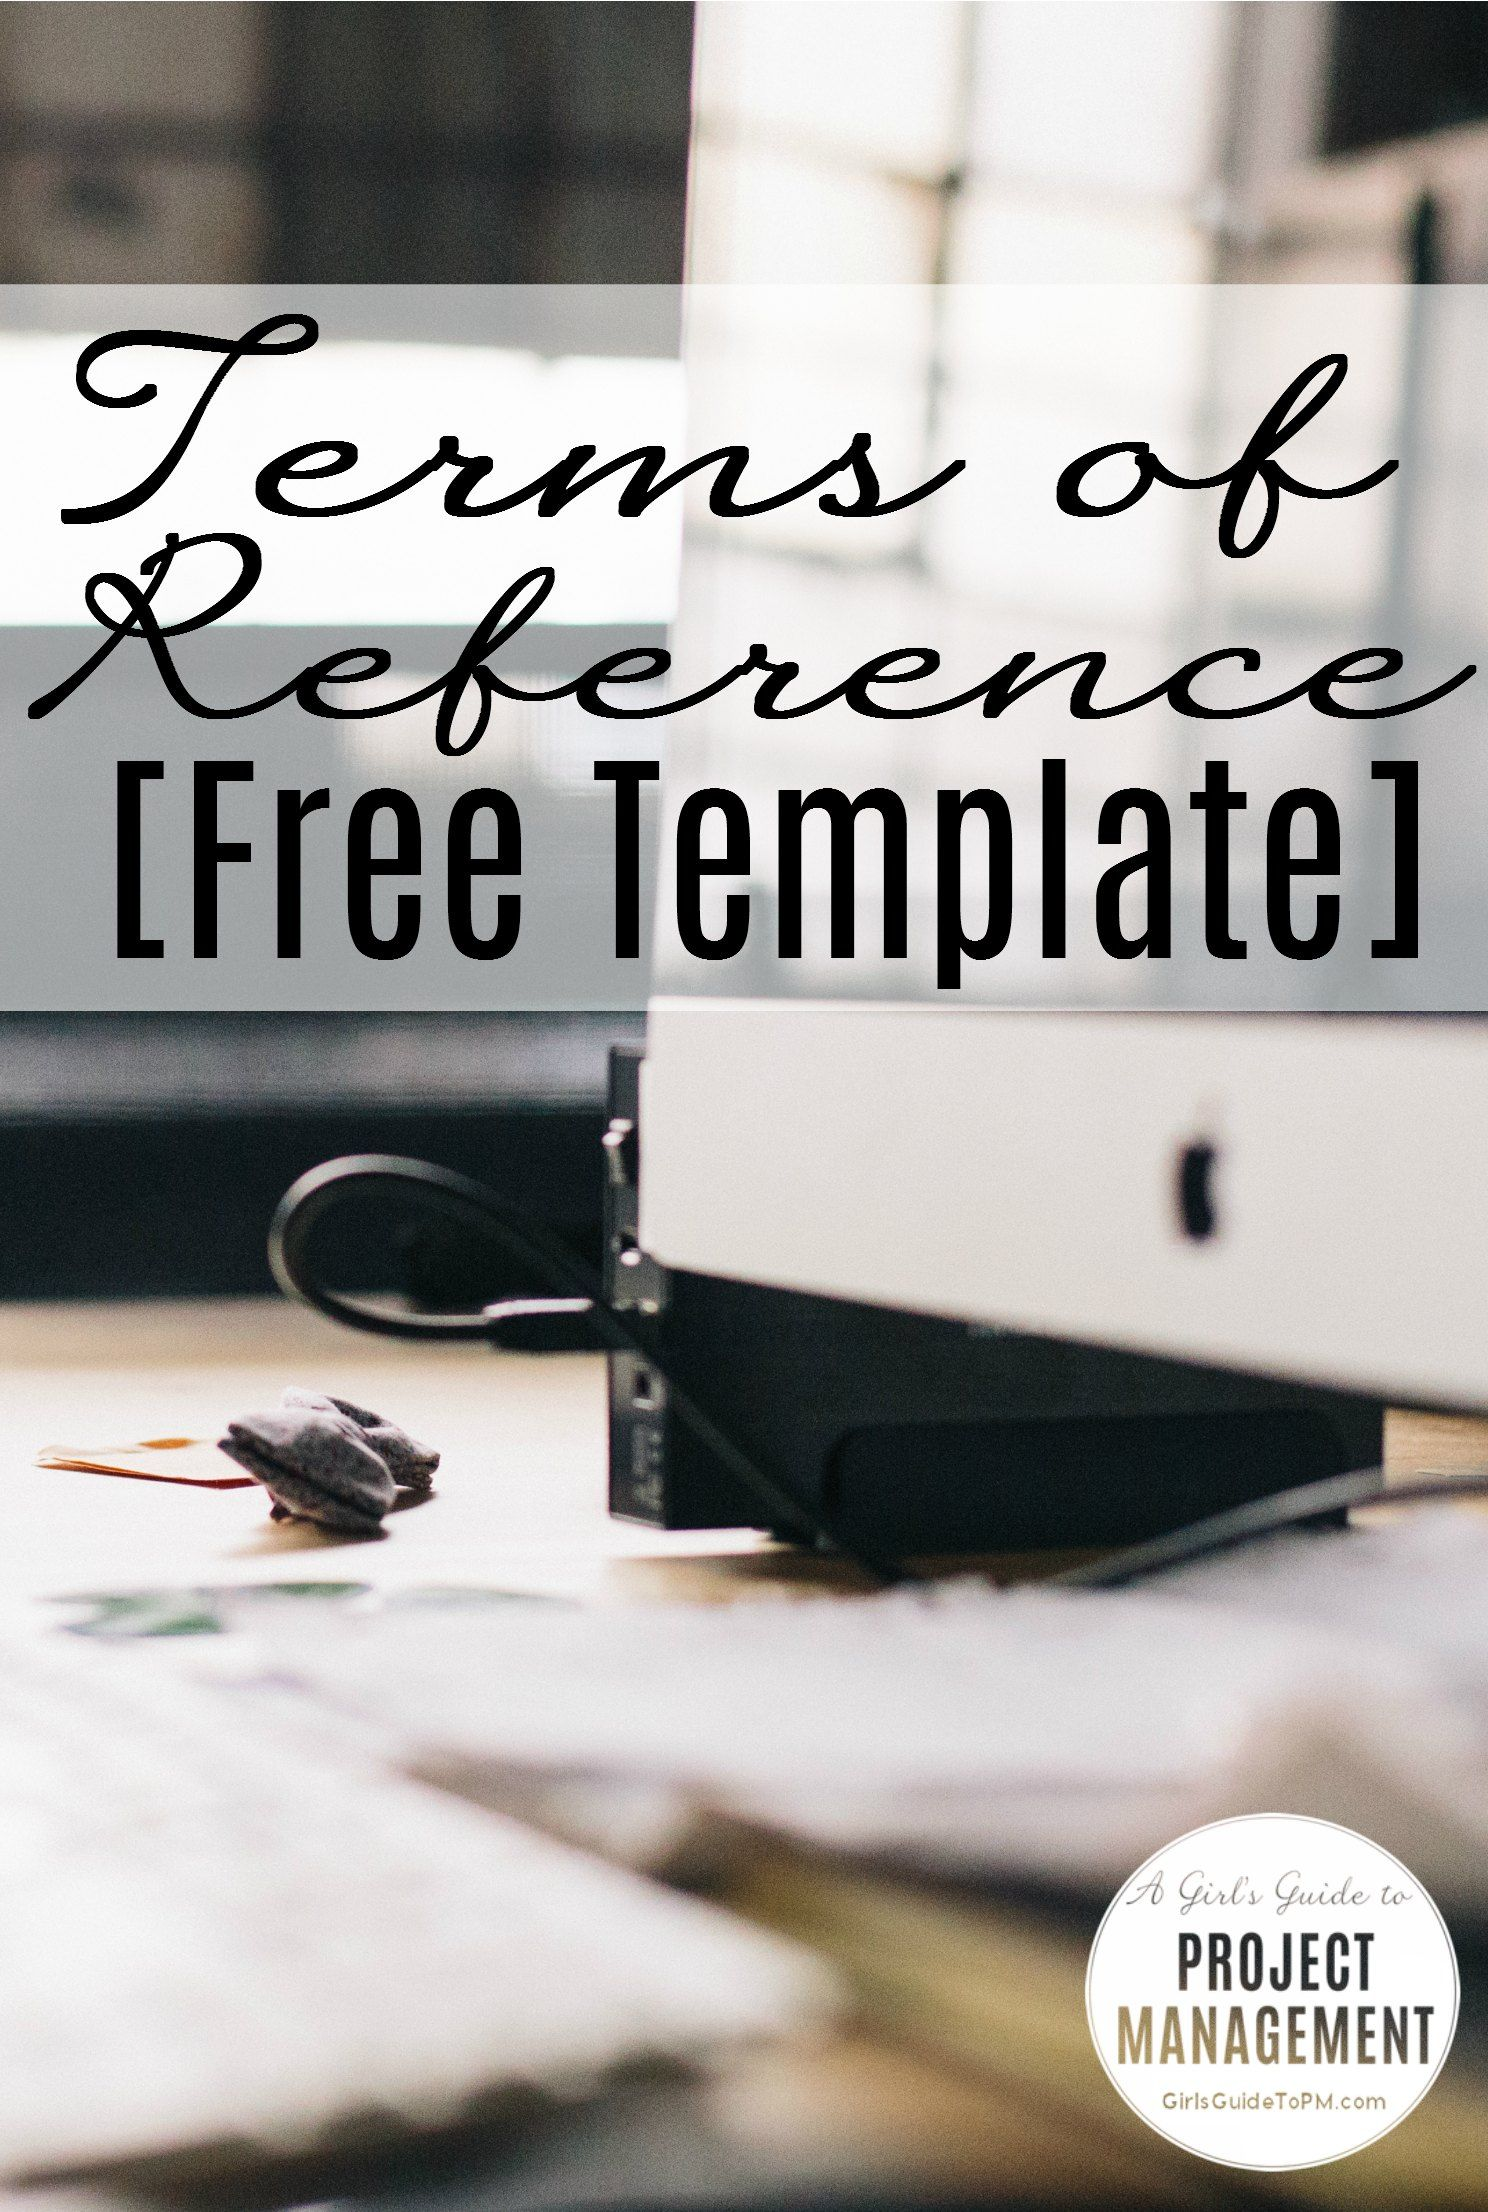 Terms Of Reference Free Template Girl S Guide To Project